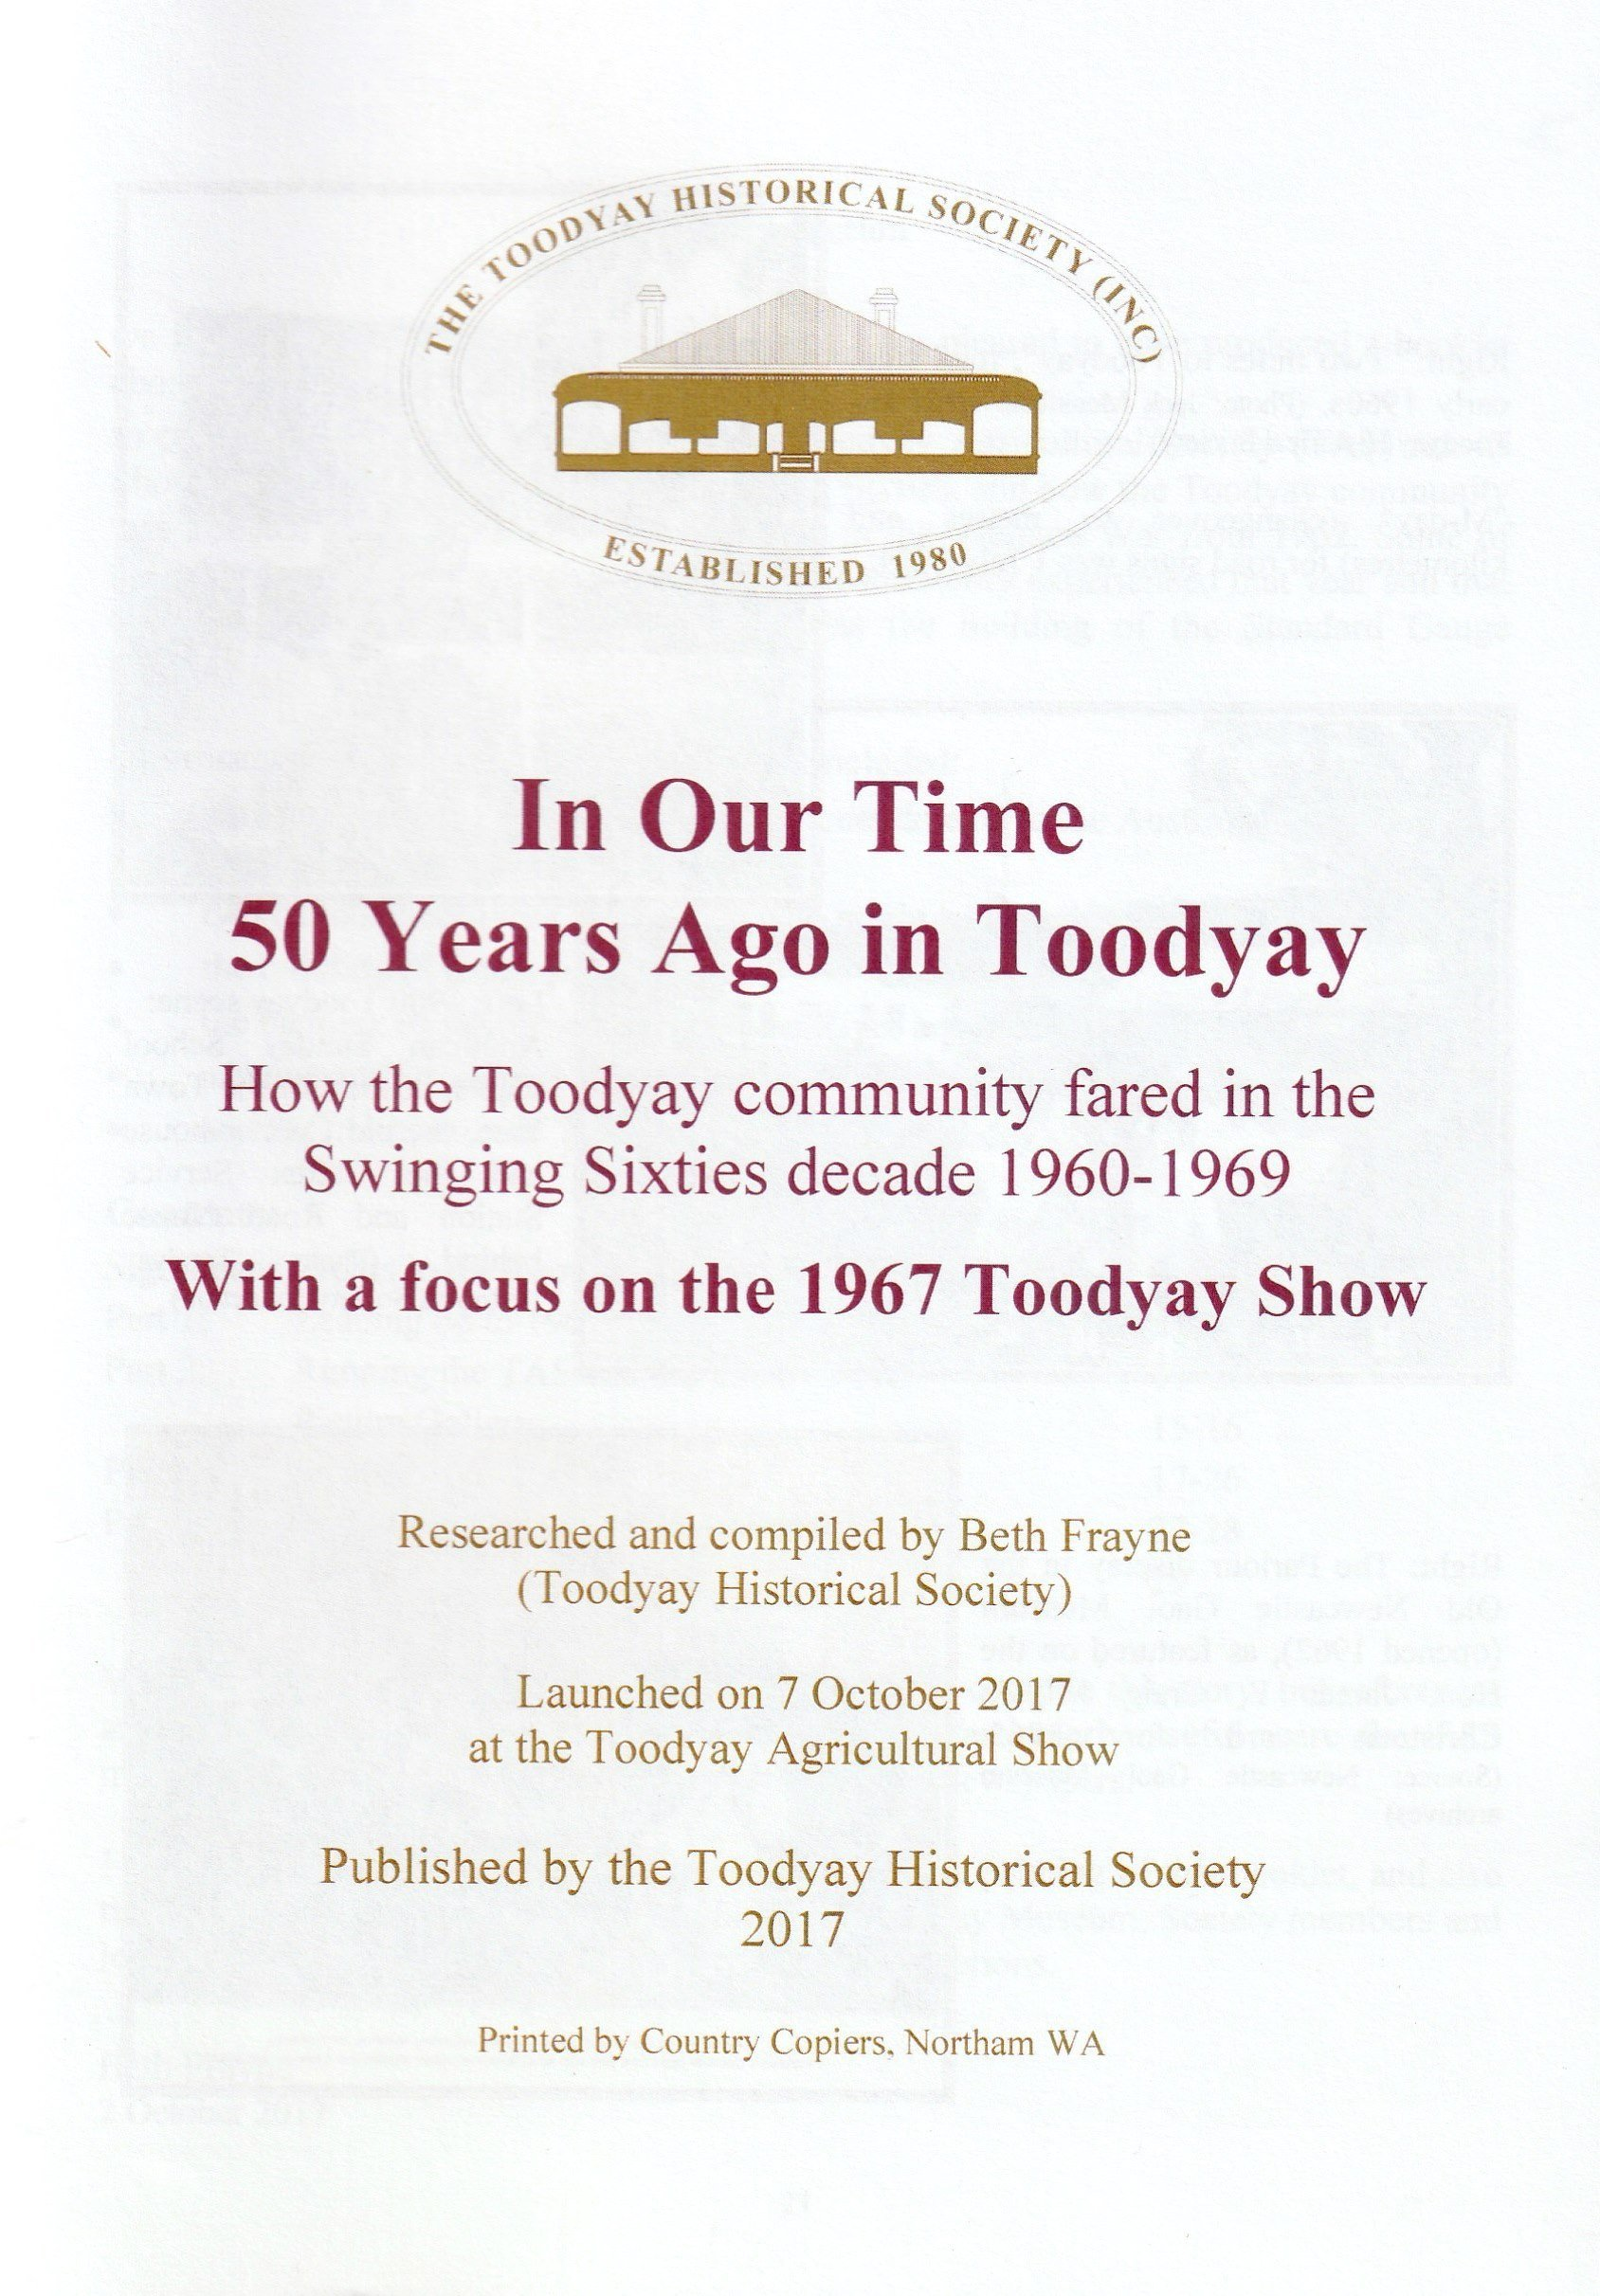 In our time: 50 years ago in Toodyay: how the Toodyay community fared in the Swinging Sixties decade, with a focus on the 1967 Toodyay Show.